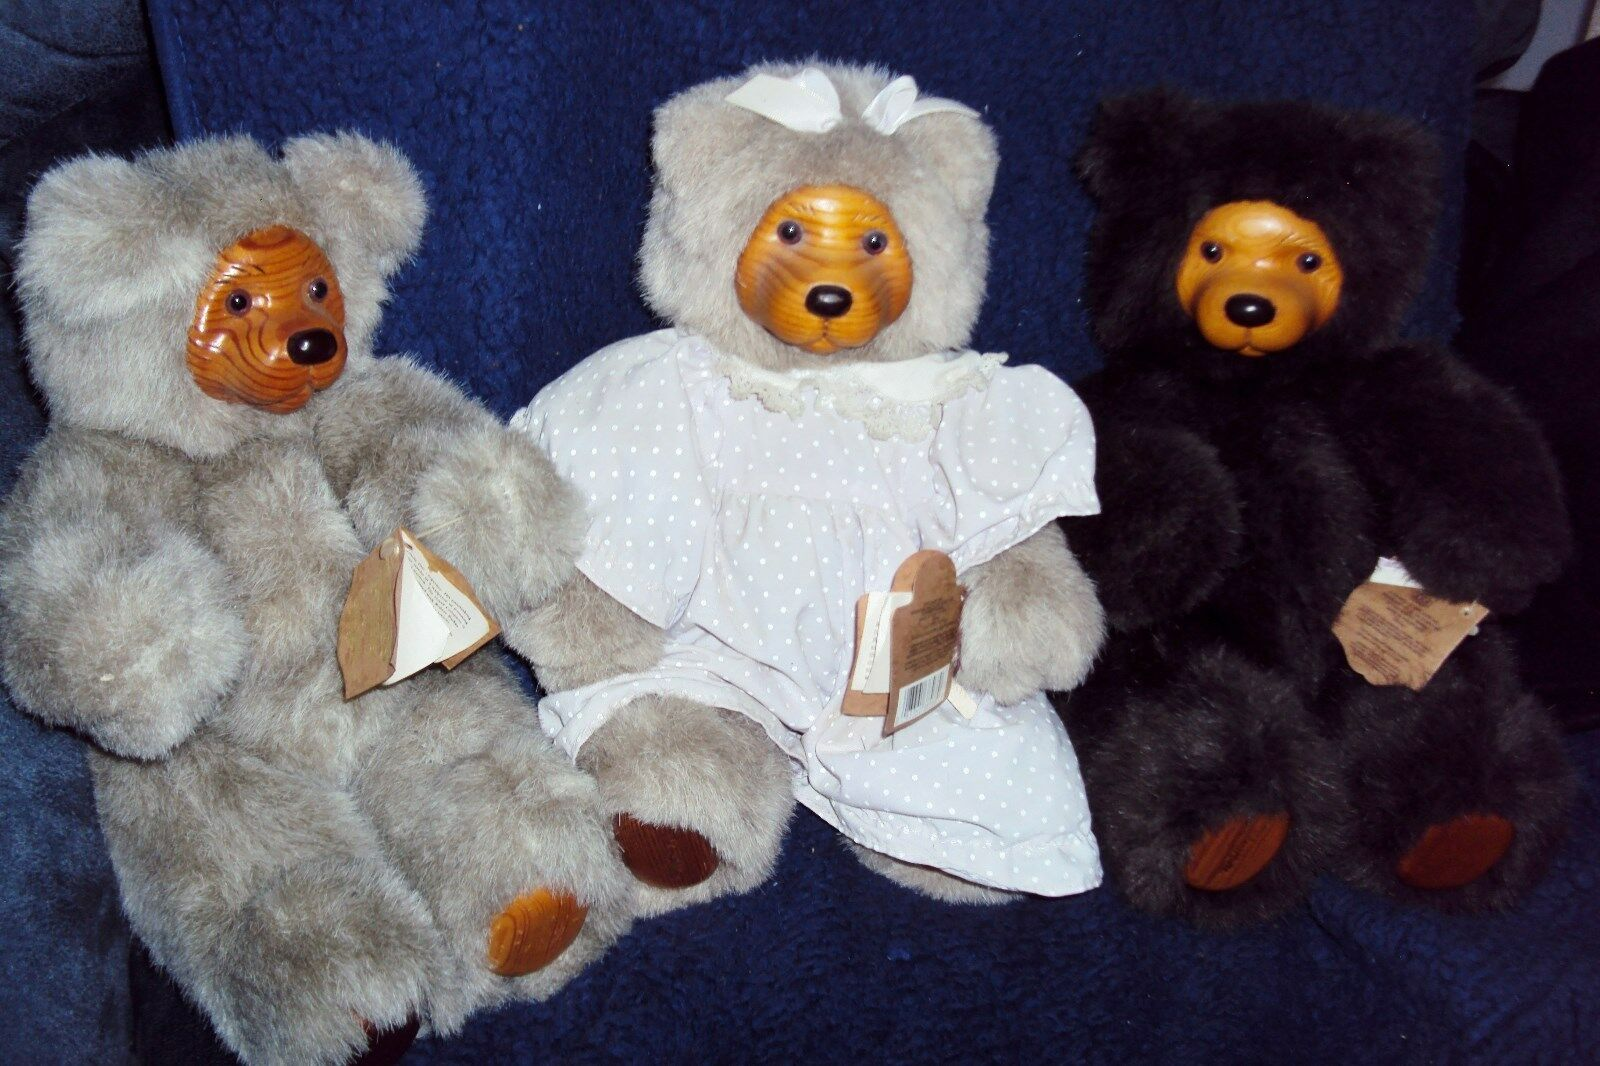 RAIKES COOKIE TEDDY BEARS 1989 LT BRN, DK BRN & PLAYTIME COOKIE12  W TAGS